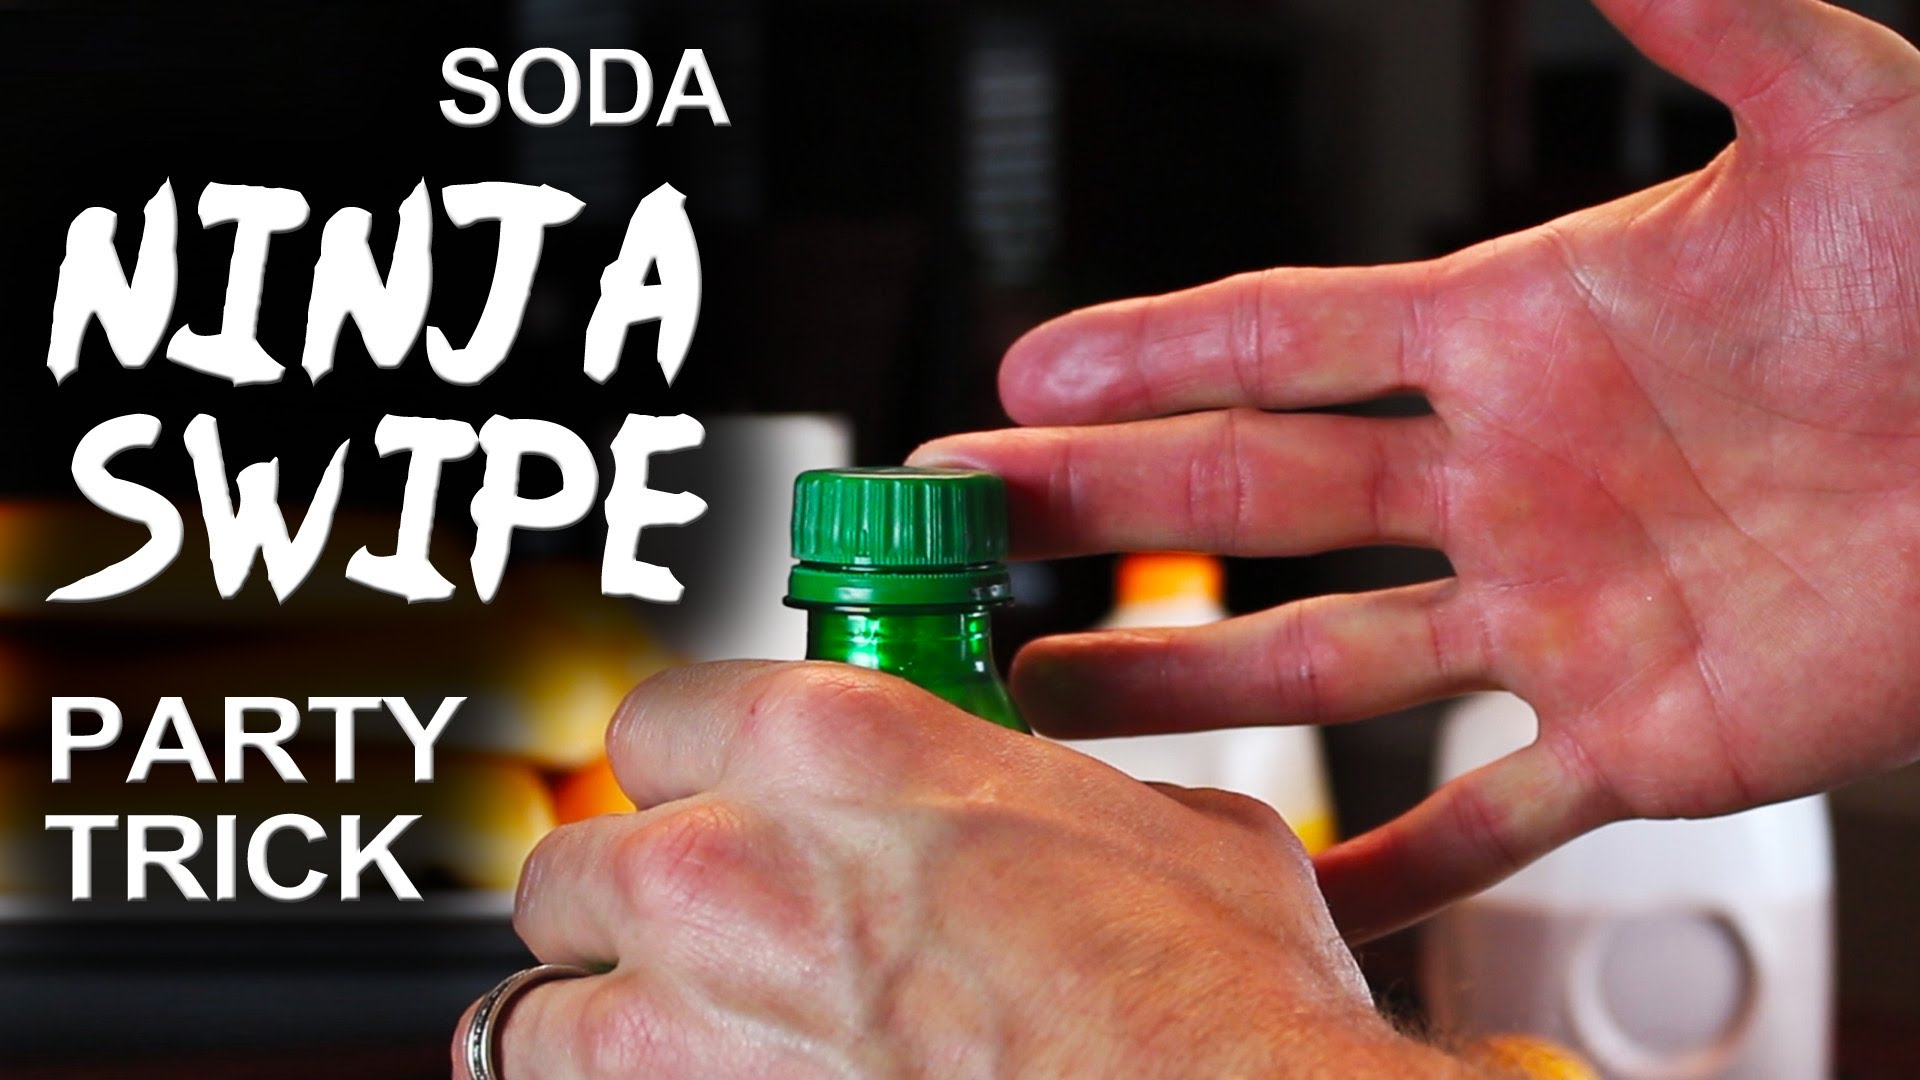 How to Open Shaken Soda Without Making a Mess Using the 'Soda Ninja Swipe'